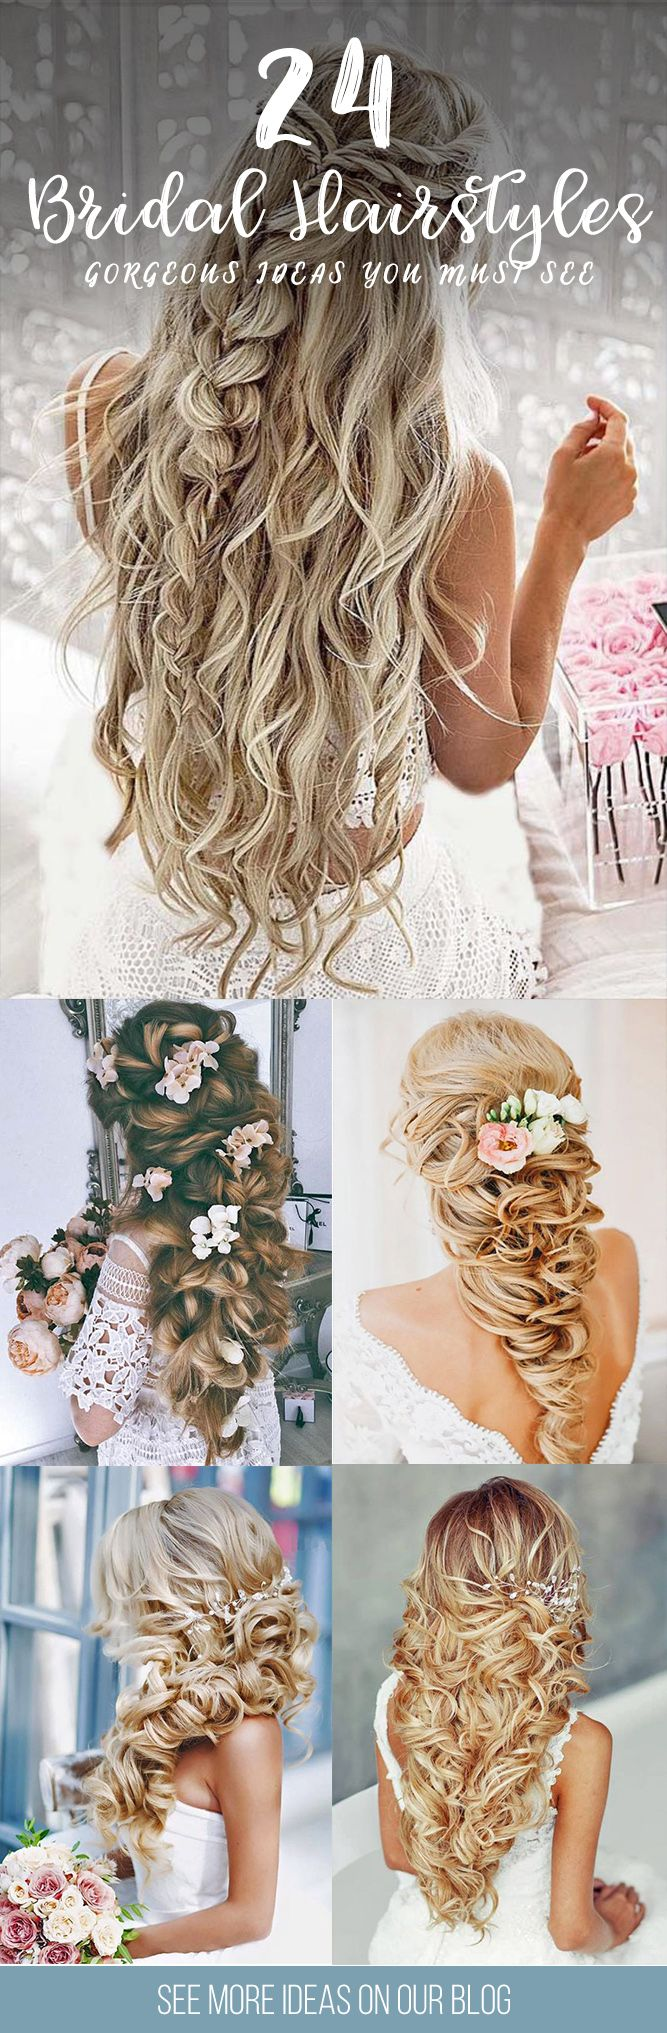 24 Gorgeous Bridal Hairstyles ❤ There are many beautiful bridal hairstyles to ...